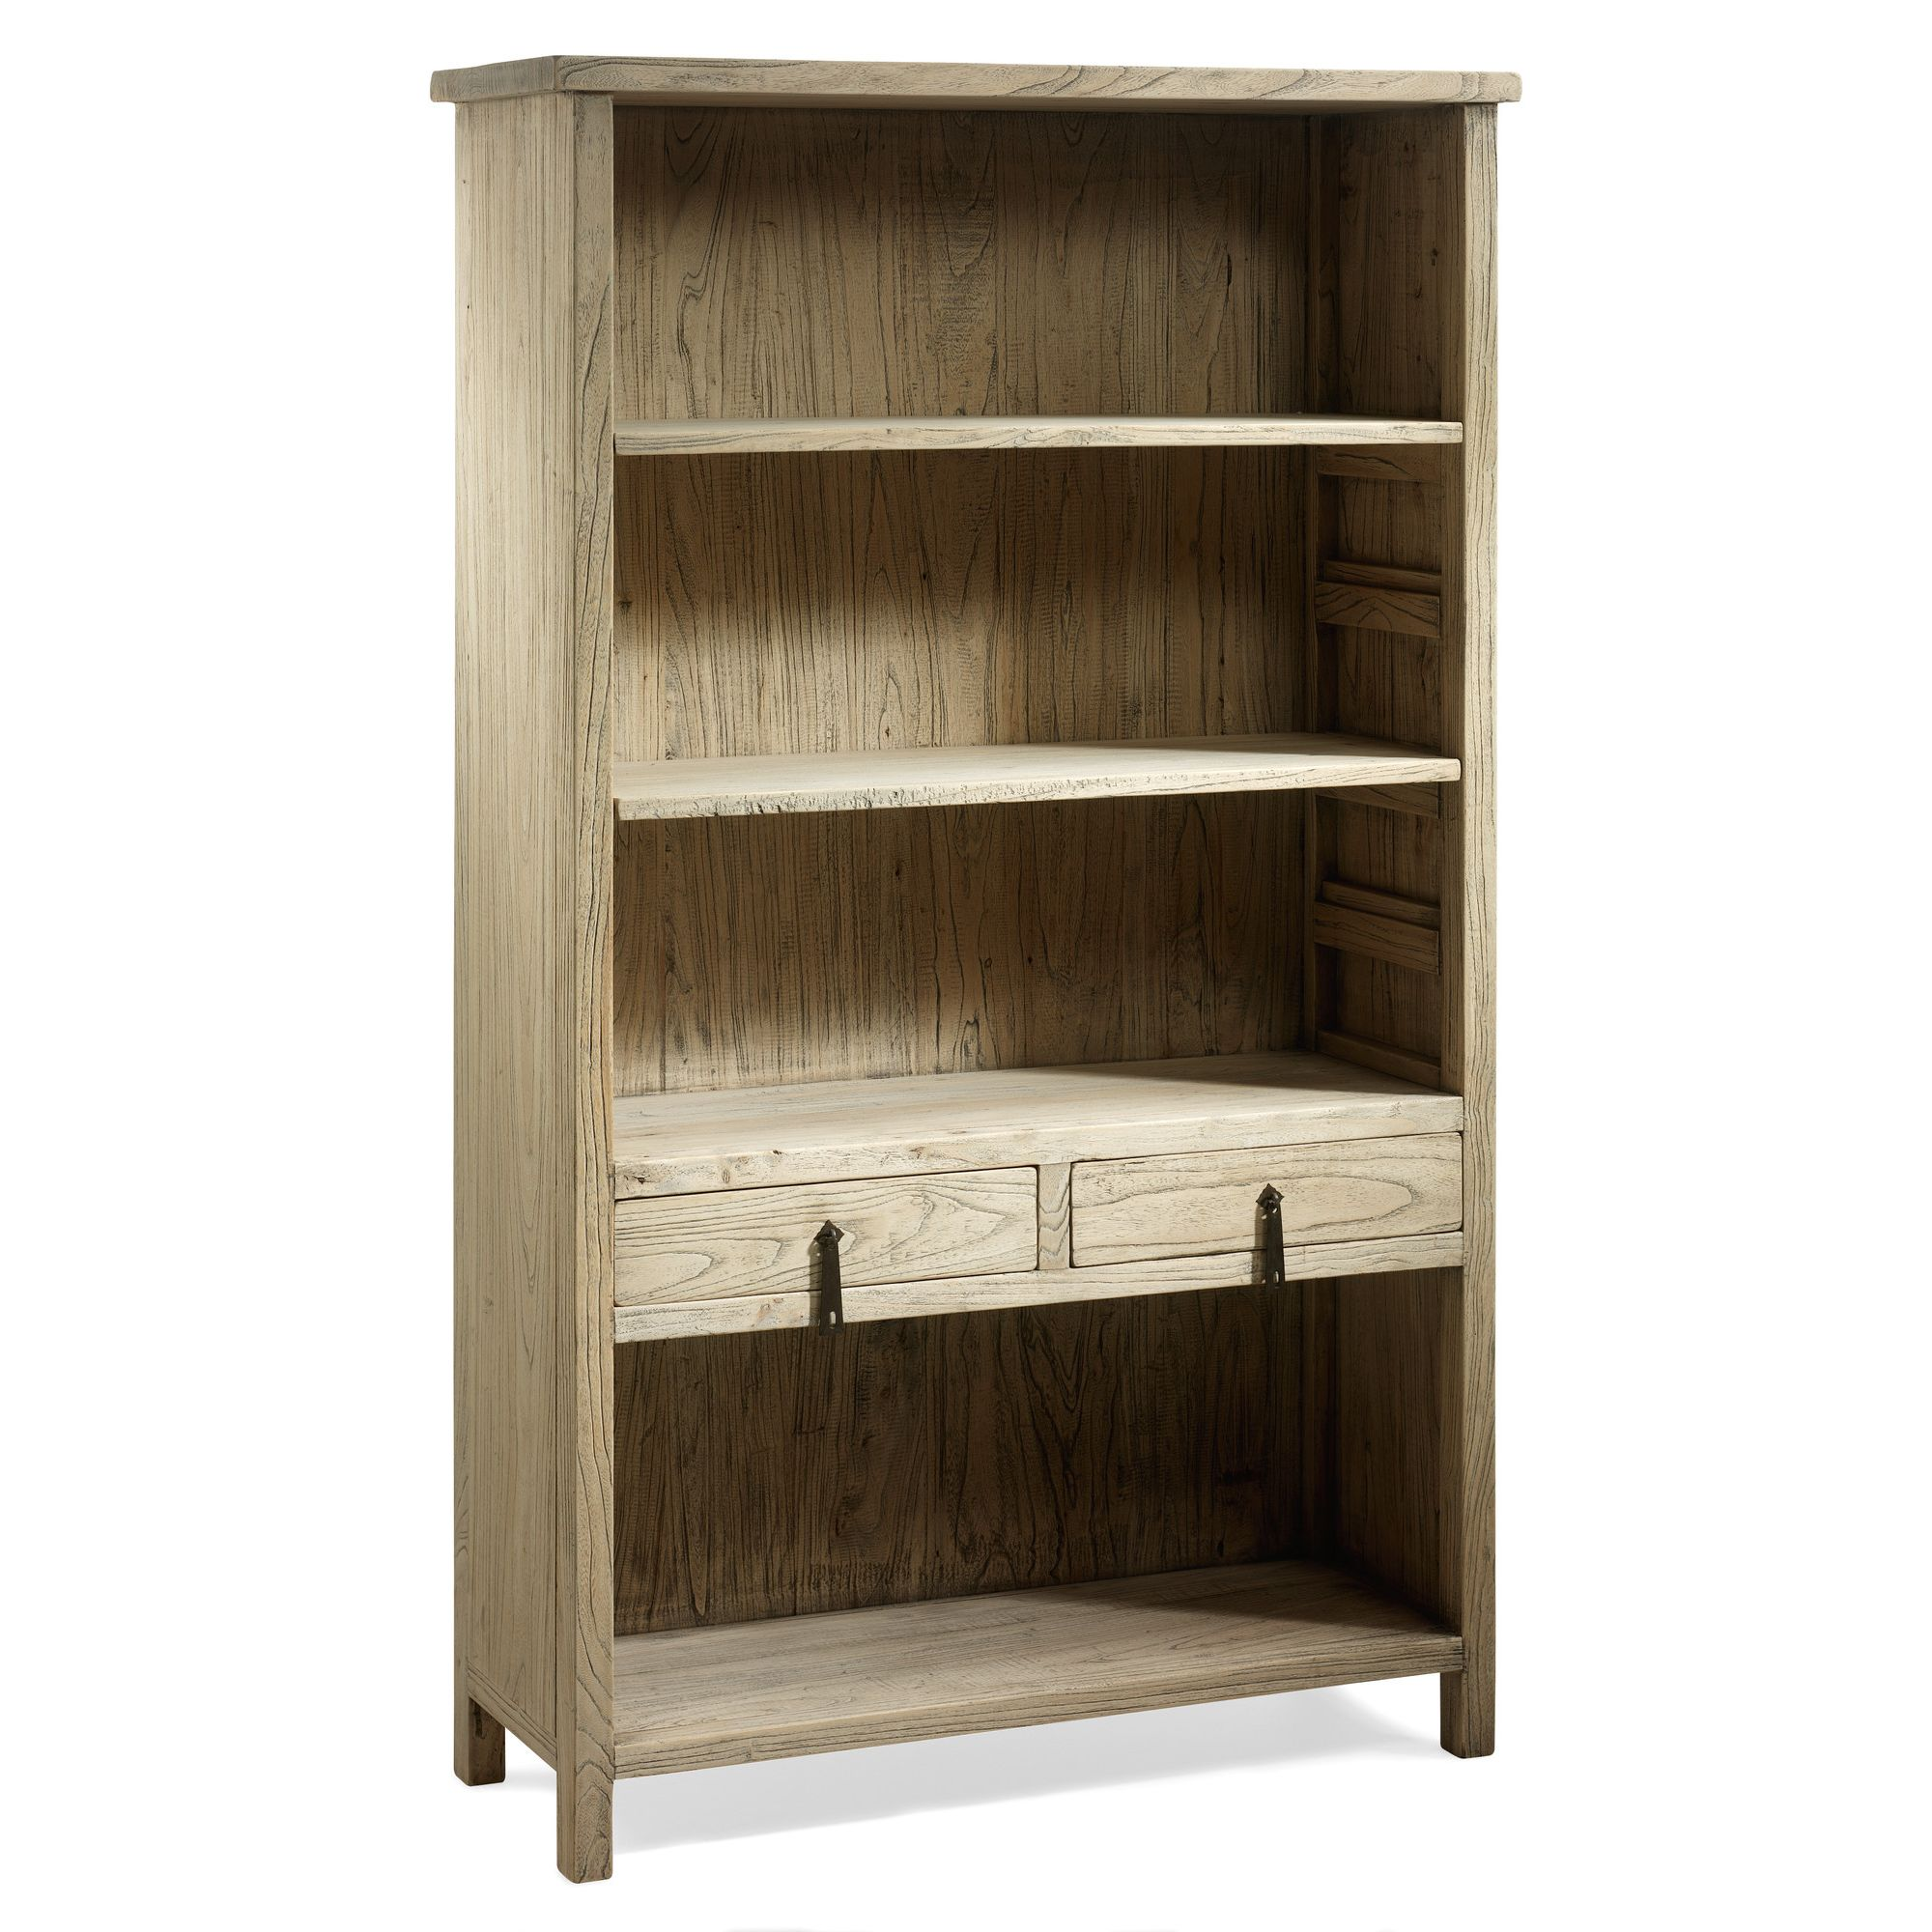 Shimu Chinese Country Furniture Book Case at Tesco Direct